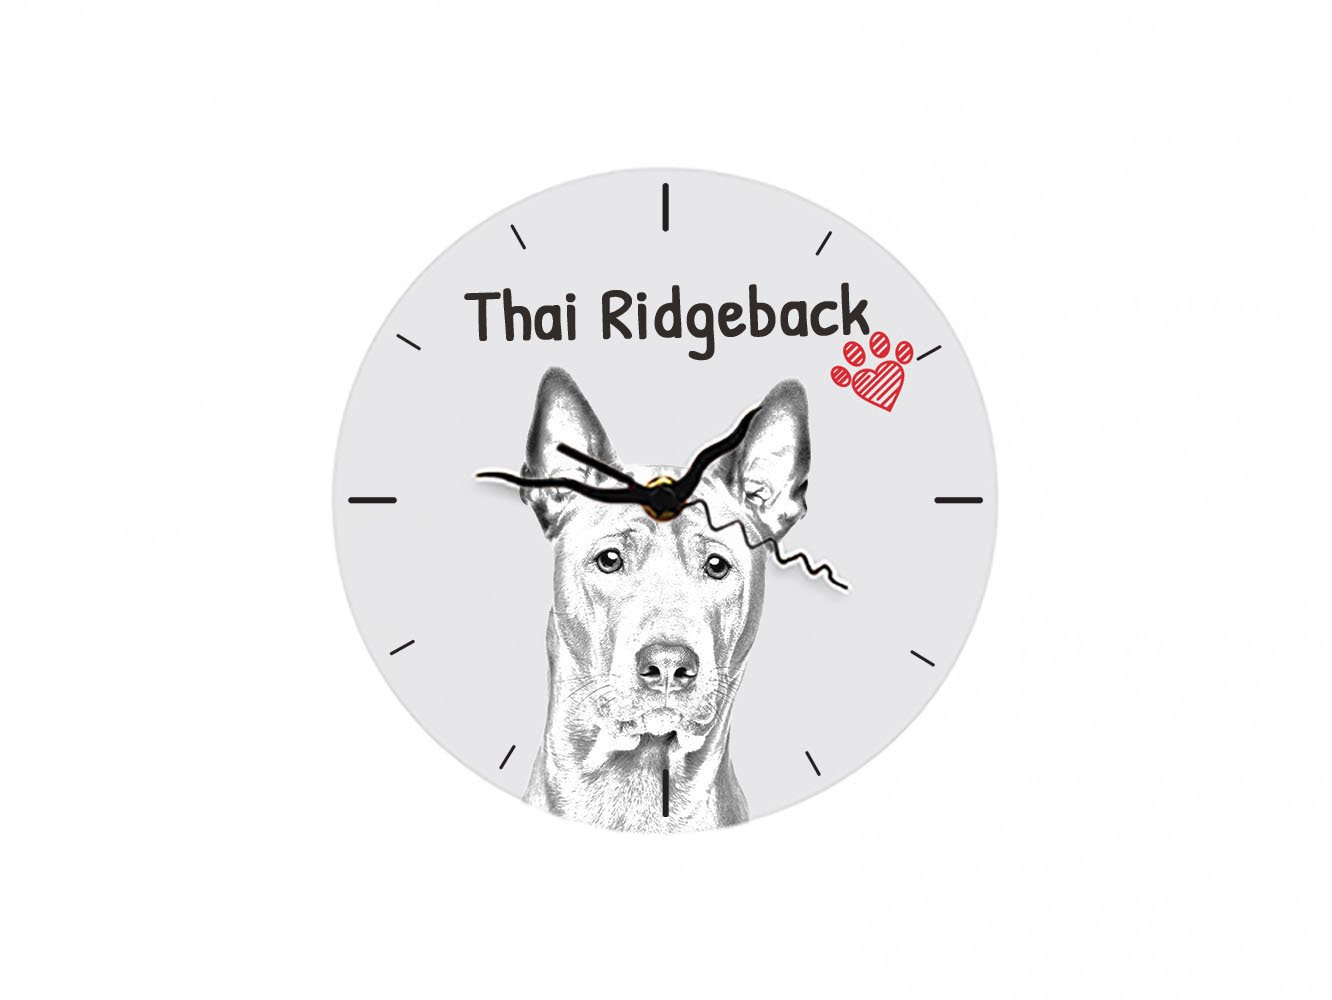 Thai Ridgeback, freestanding MDF floor clock with an image of a dog by Art Dog Ltd.